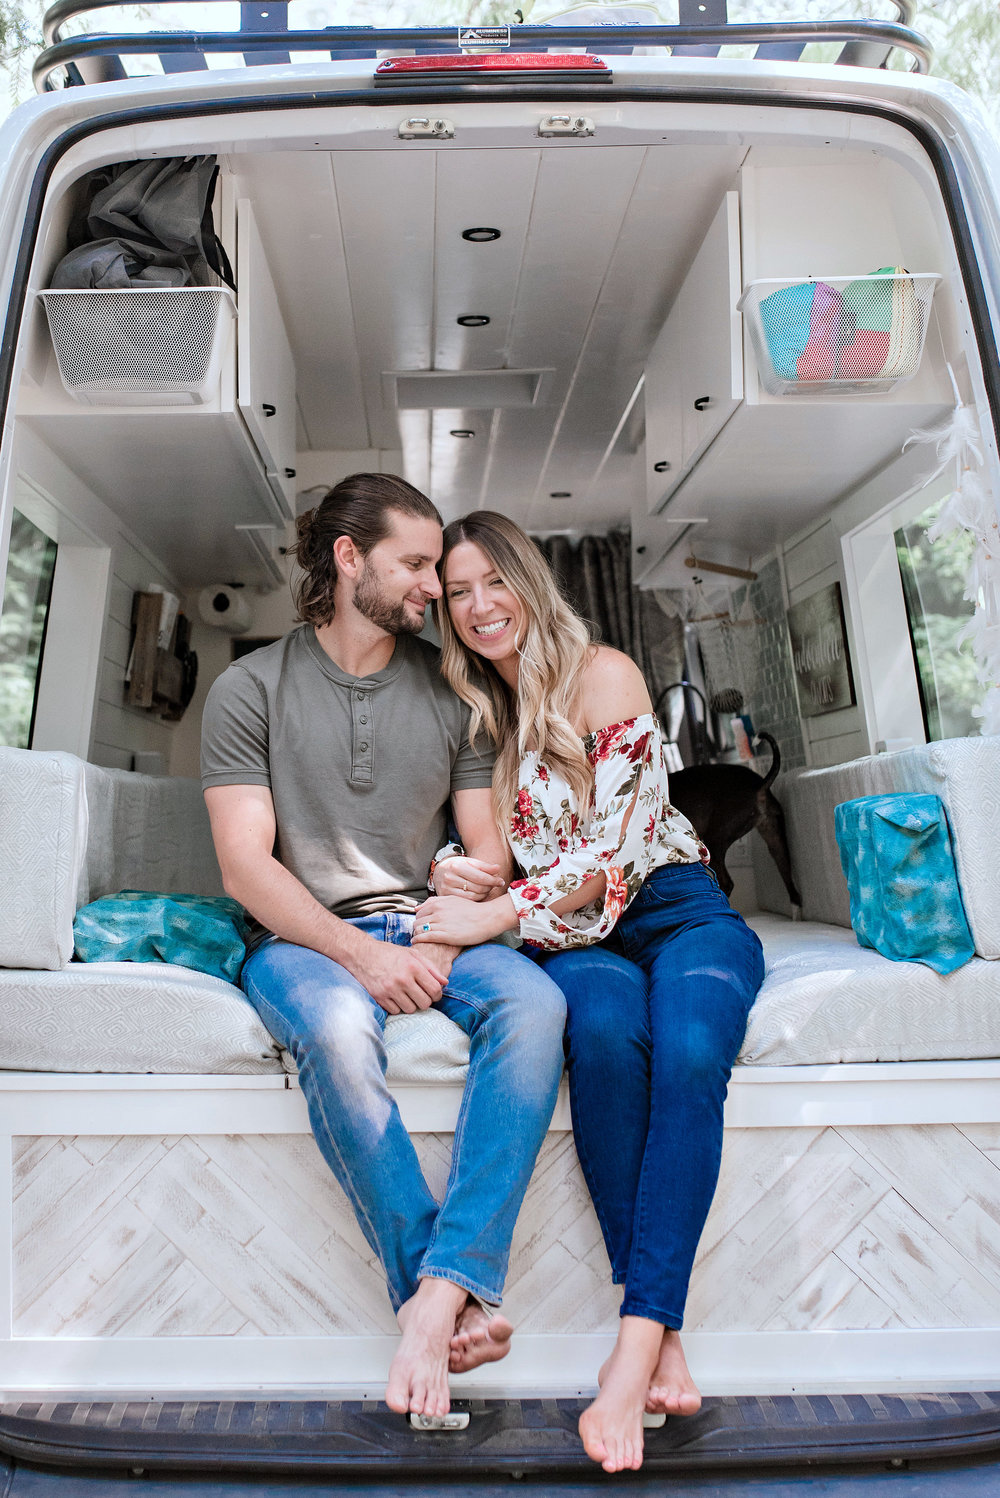 Hi, We're Sara & Alex!  We've been living van life for the last 1.5 years, and recently took a break from our travels to start van conversions in San Diego. We love sharing and creating content about van life, working remotely and designing a functional, beautiful home in small spaces.